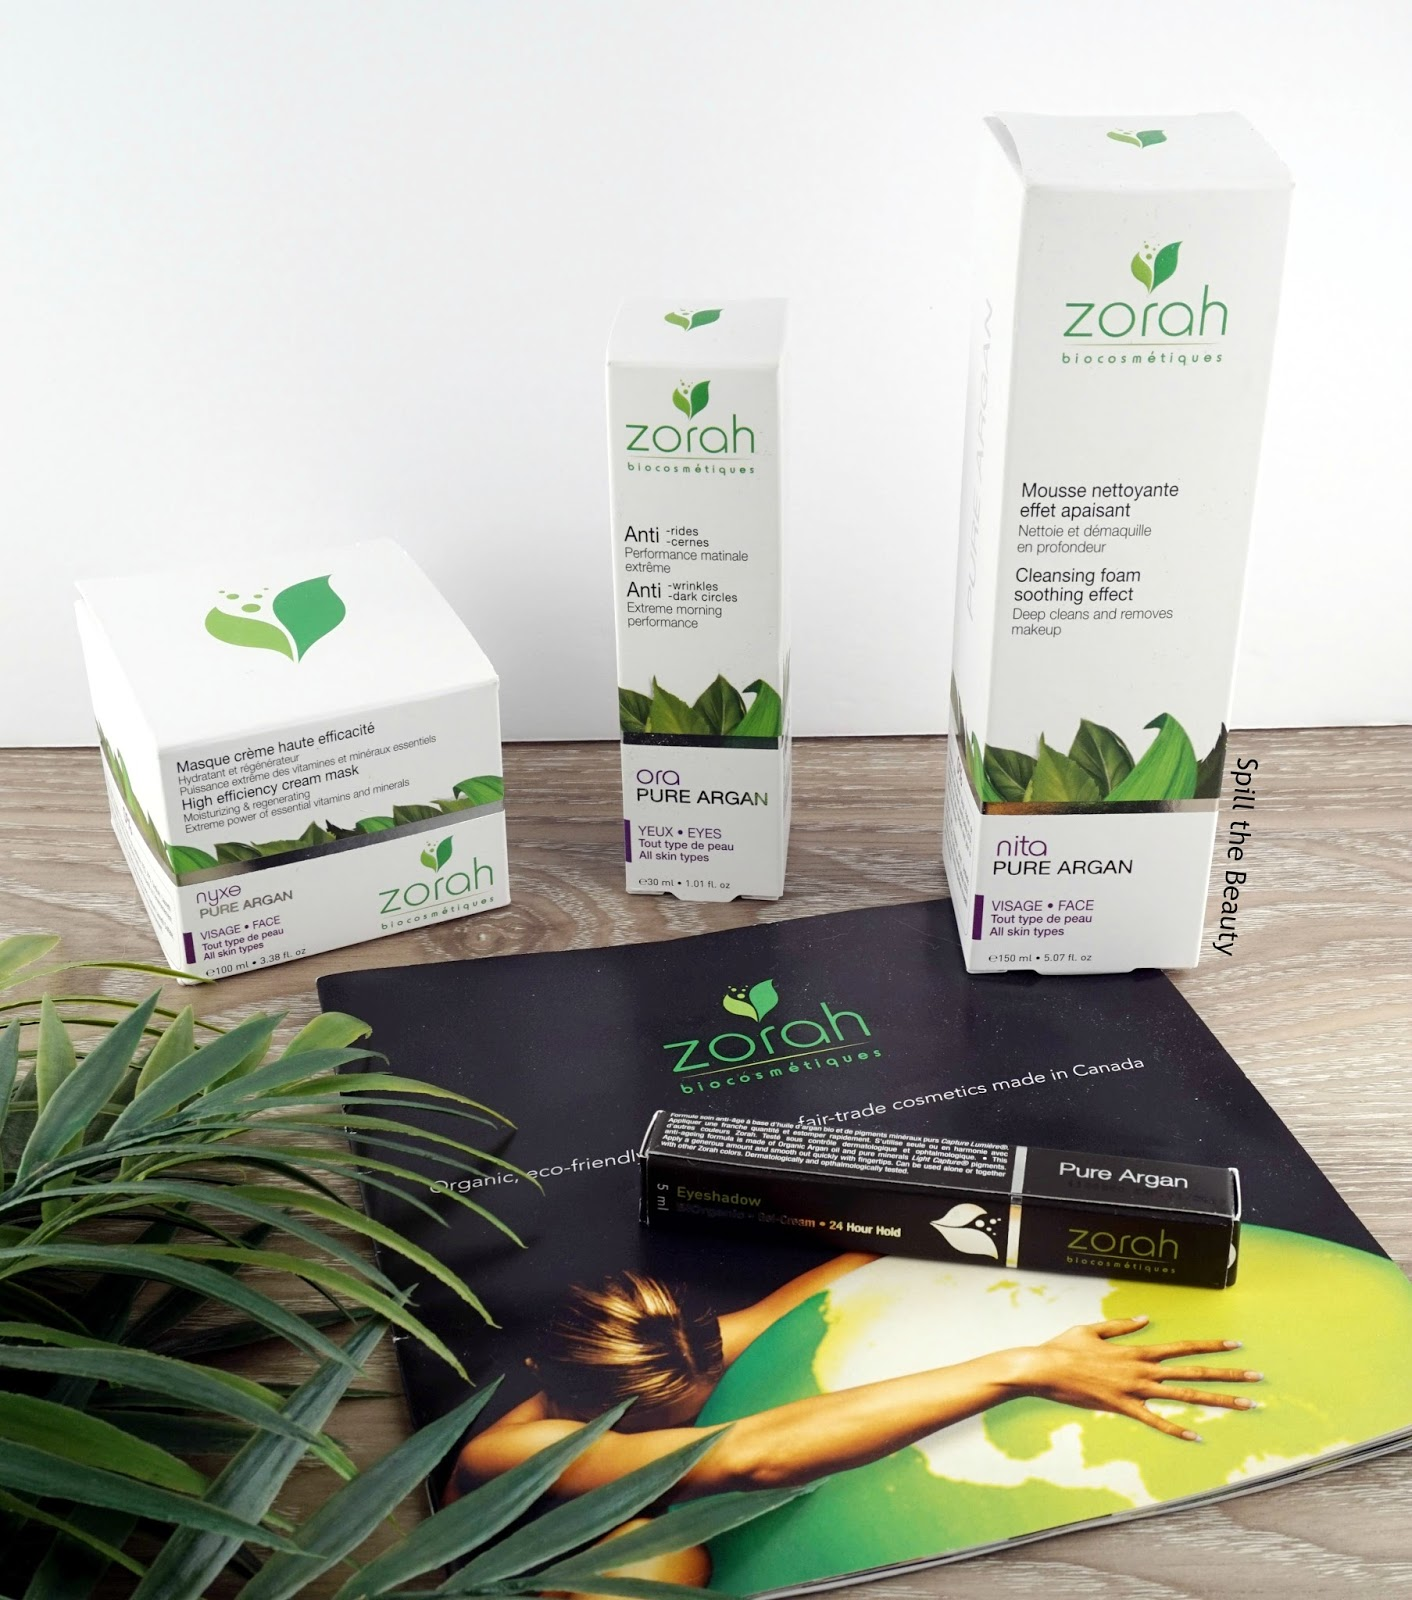 Introducing: Zorah Biocosmétiques + My Top Picks